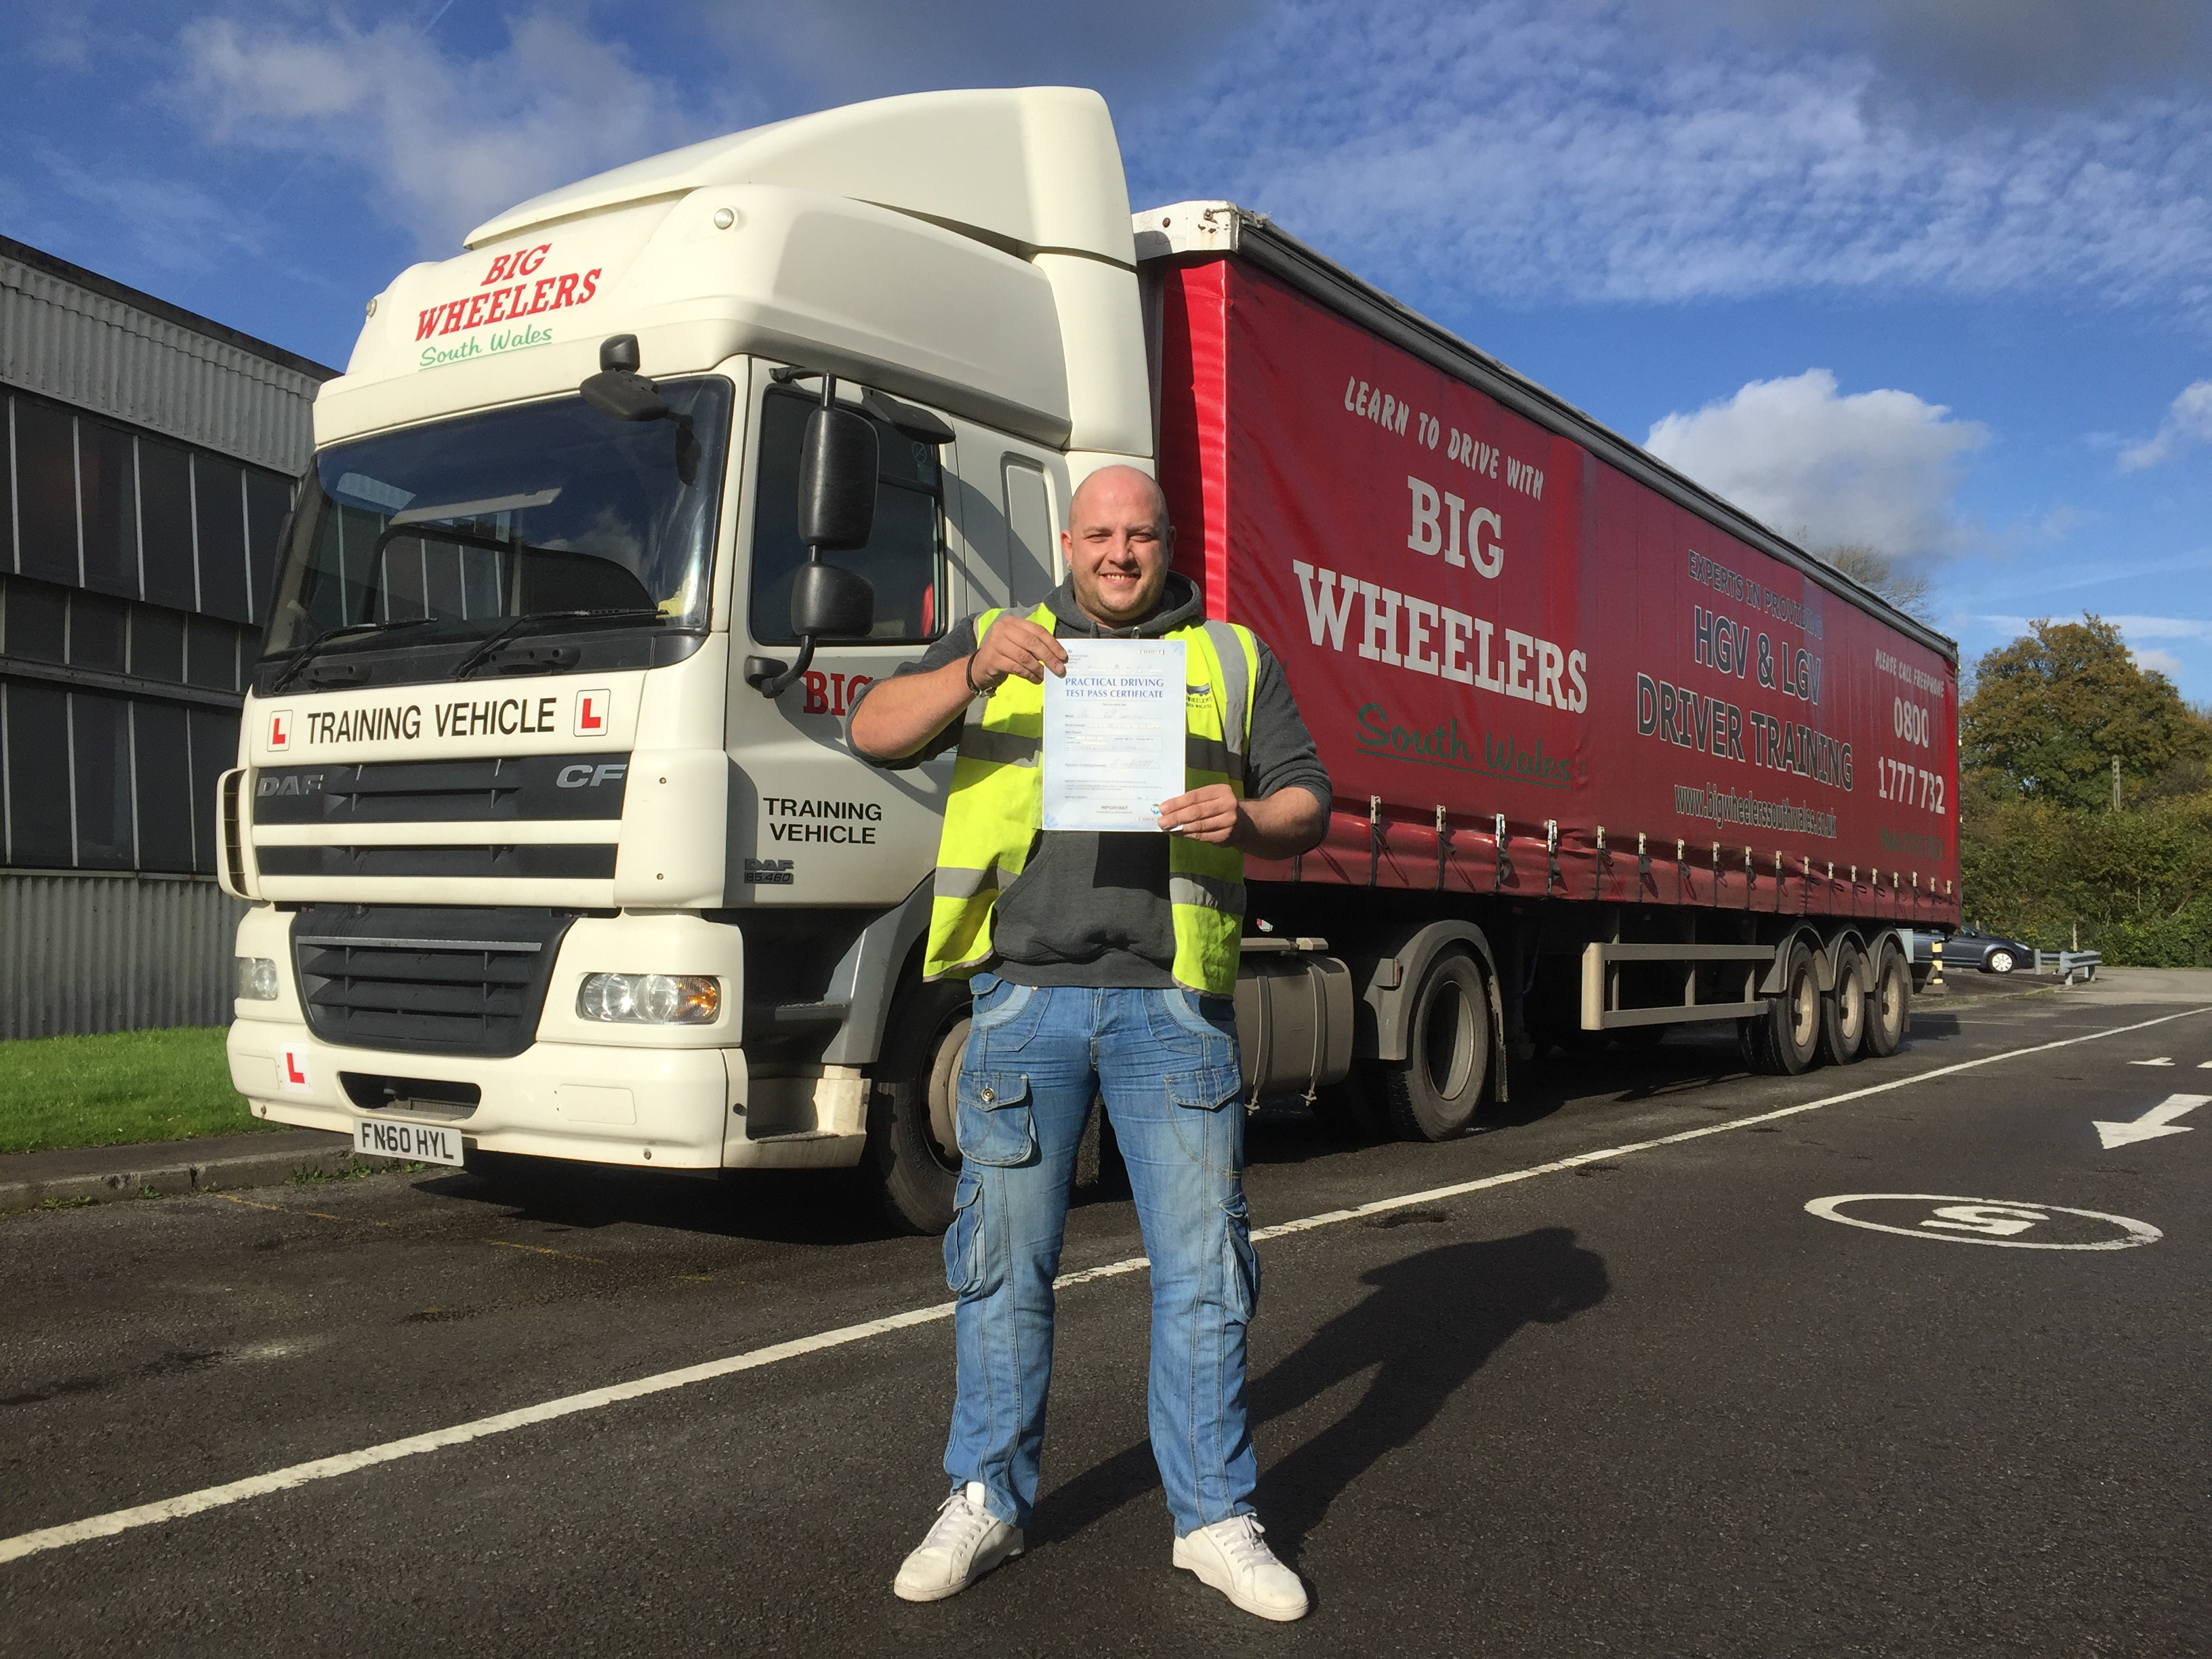 LGV C+E (HGV Class 1) Training Package (16 hours) for a Professional Artic Truck Driver